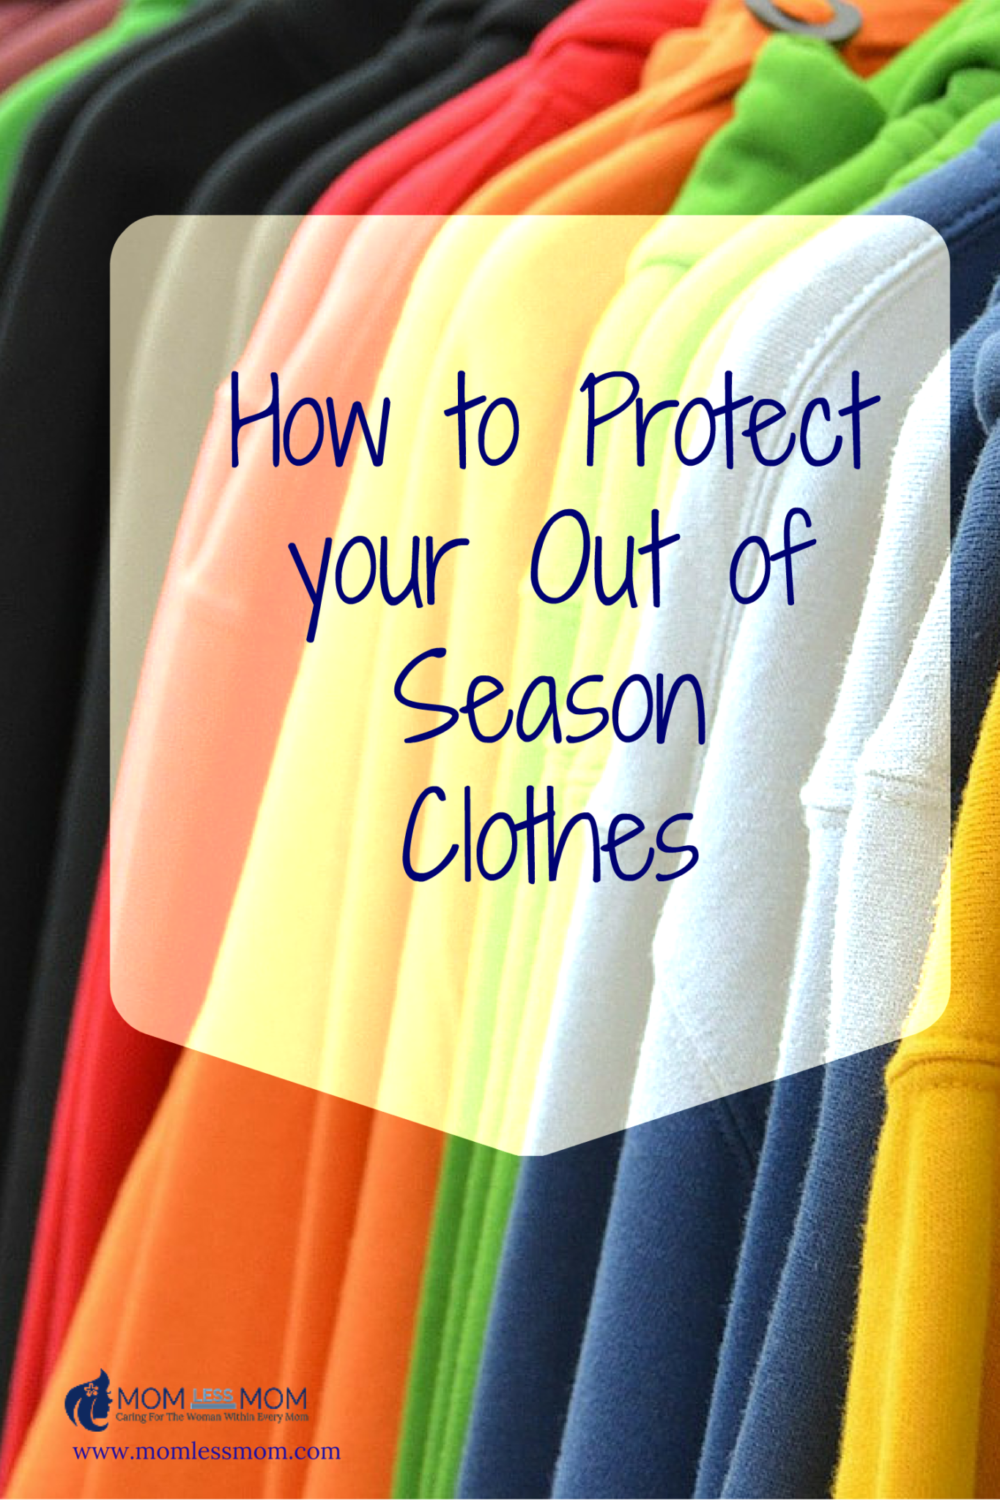 Protect your Out of Season Clothes in 3 Steps